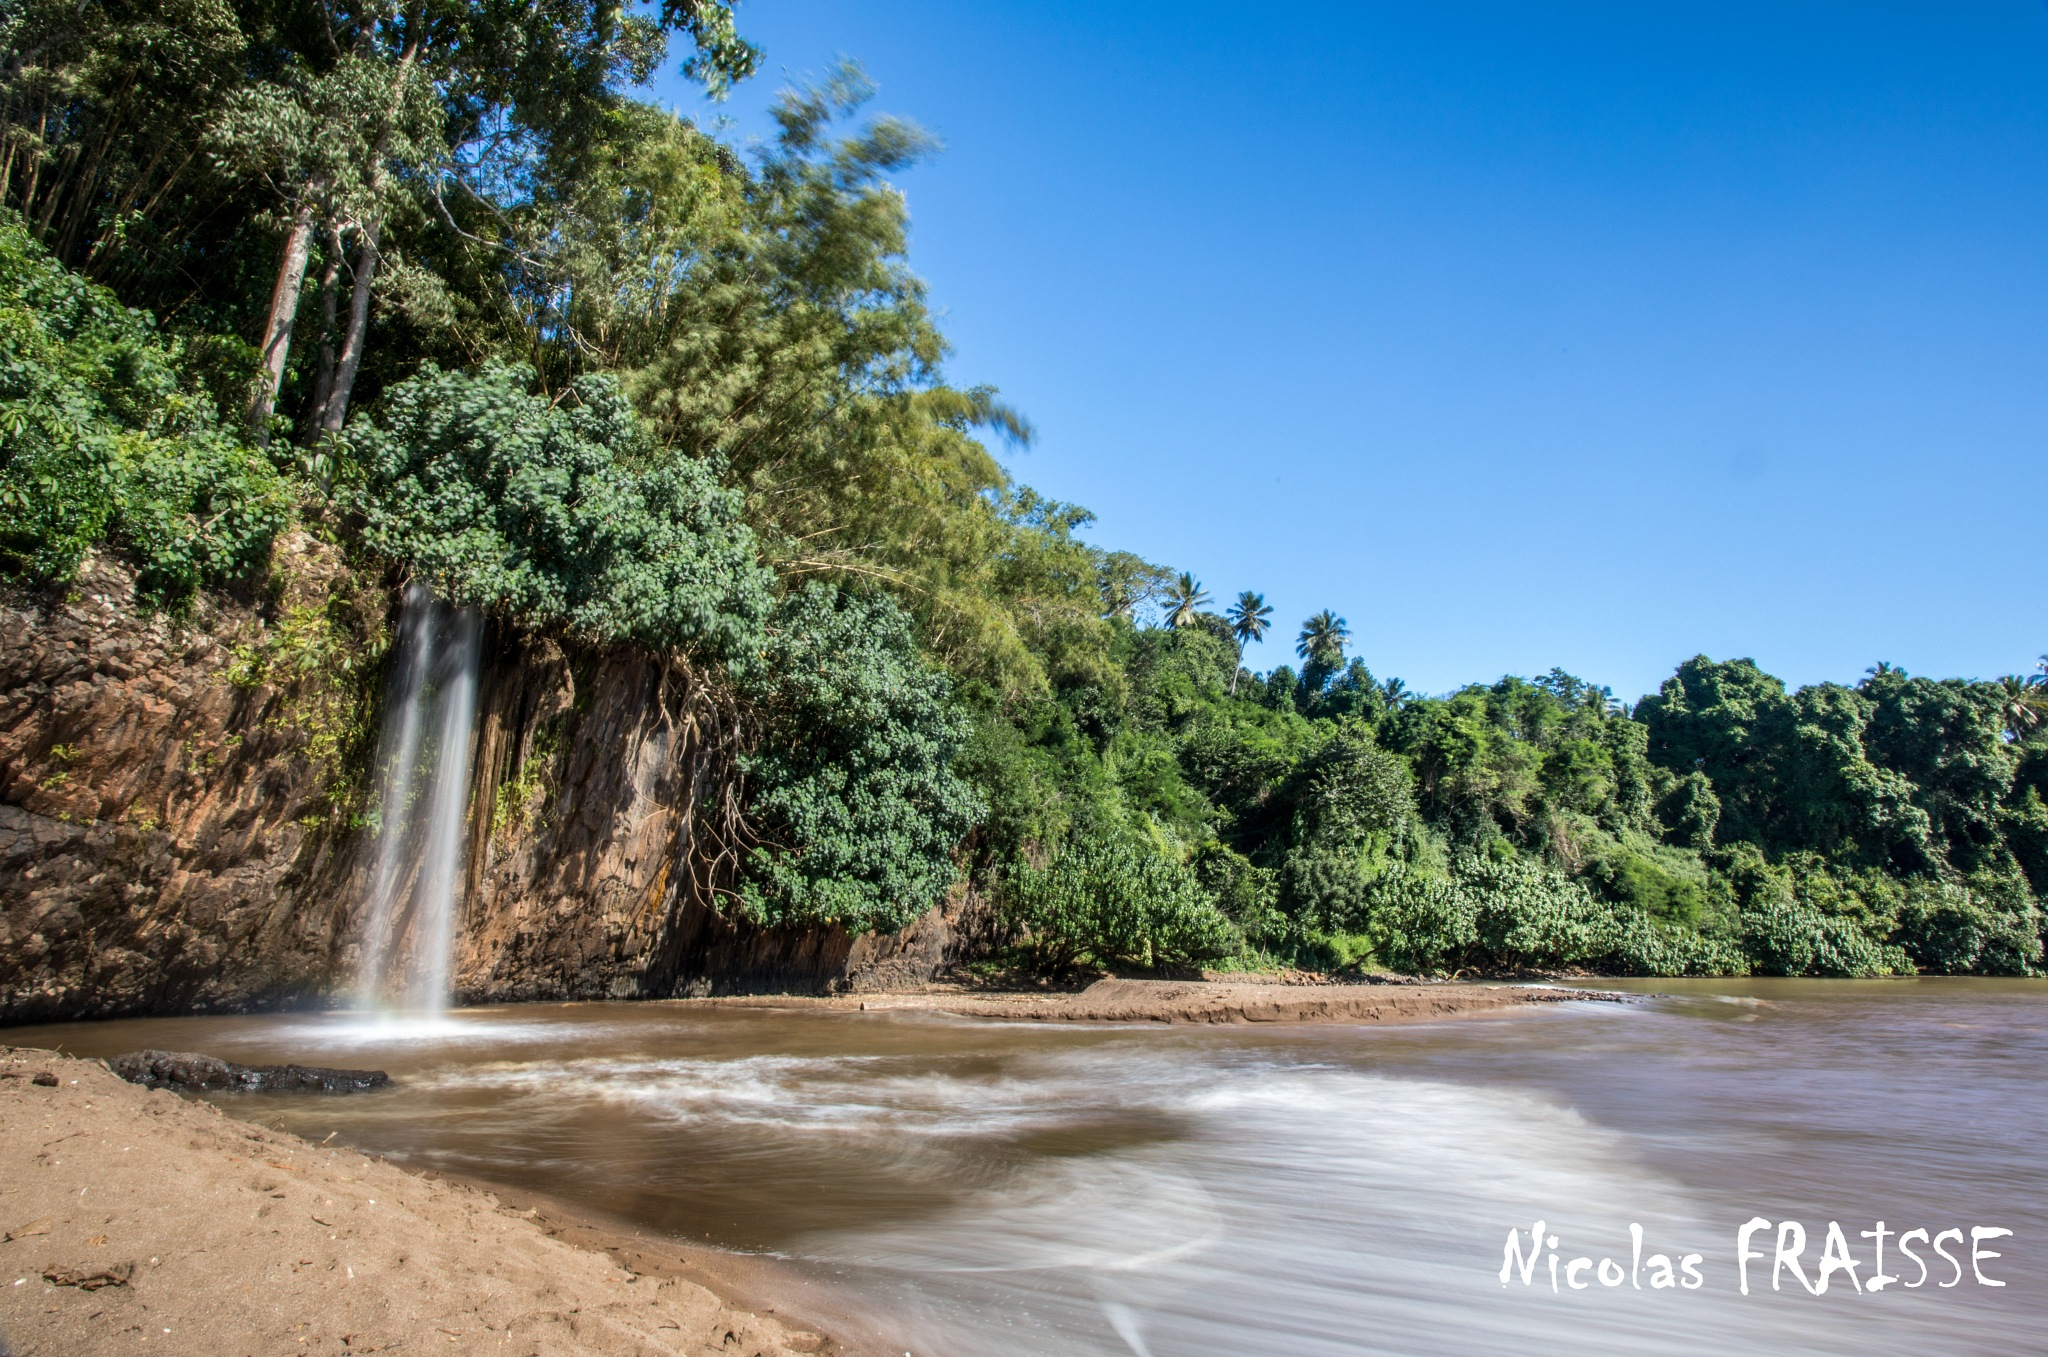 water falls on the beach by Nicolas F.